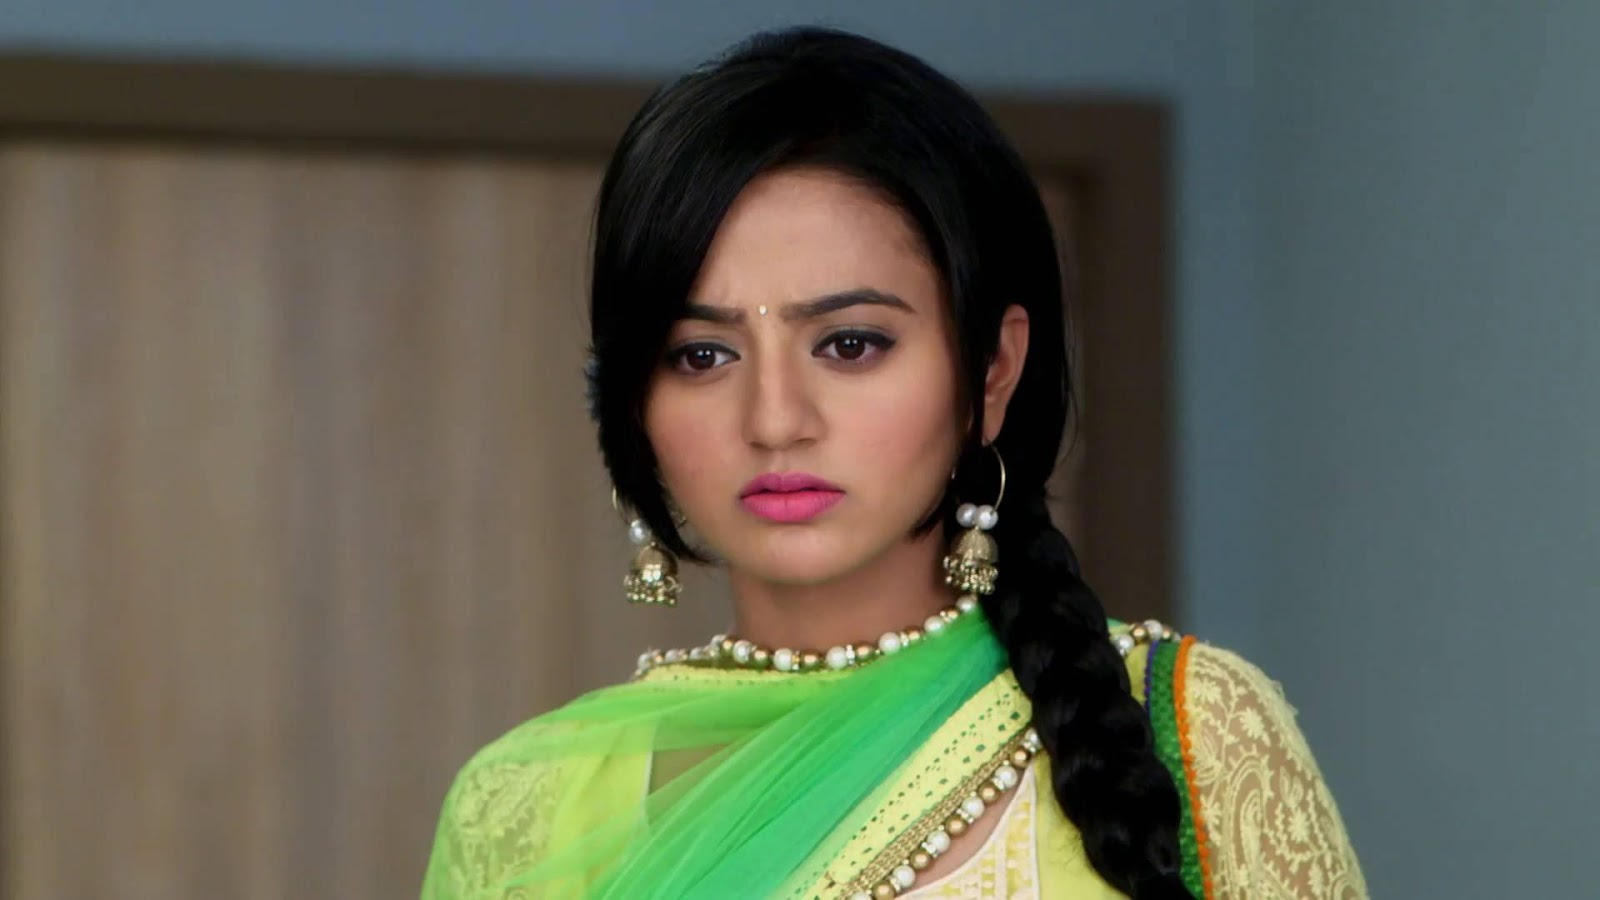 Latest Helly Shah Hd Wallpapers Images And Picttures Wallpaper Hd